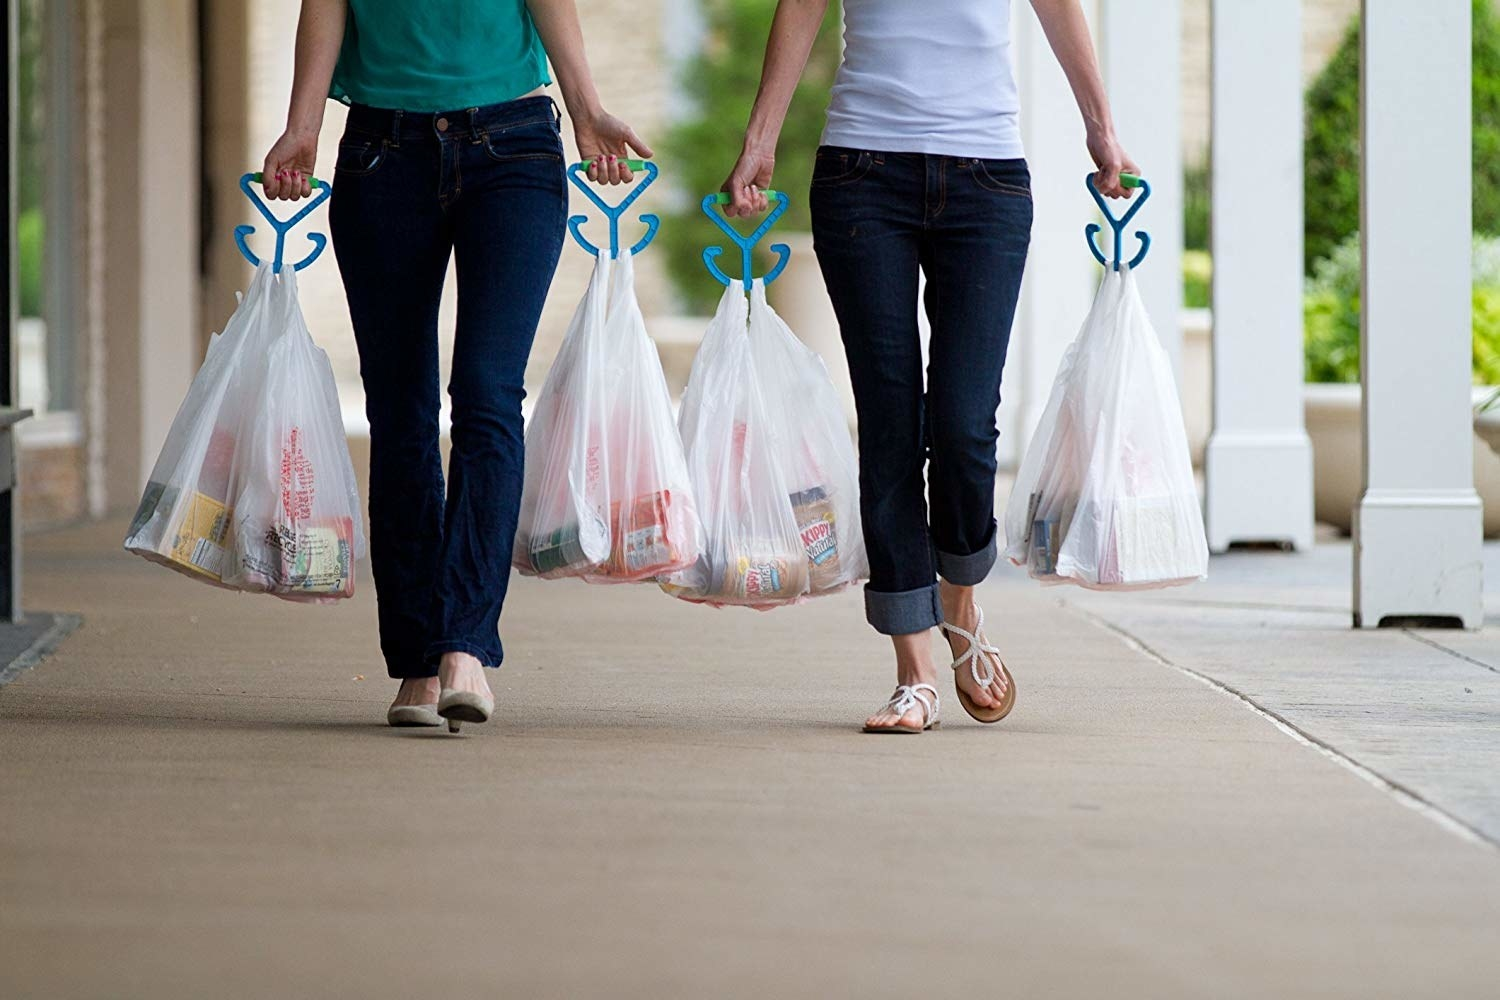 Two people carrying several bags in each hand hung on the blue handles